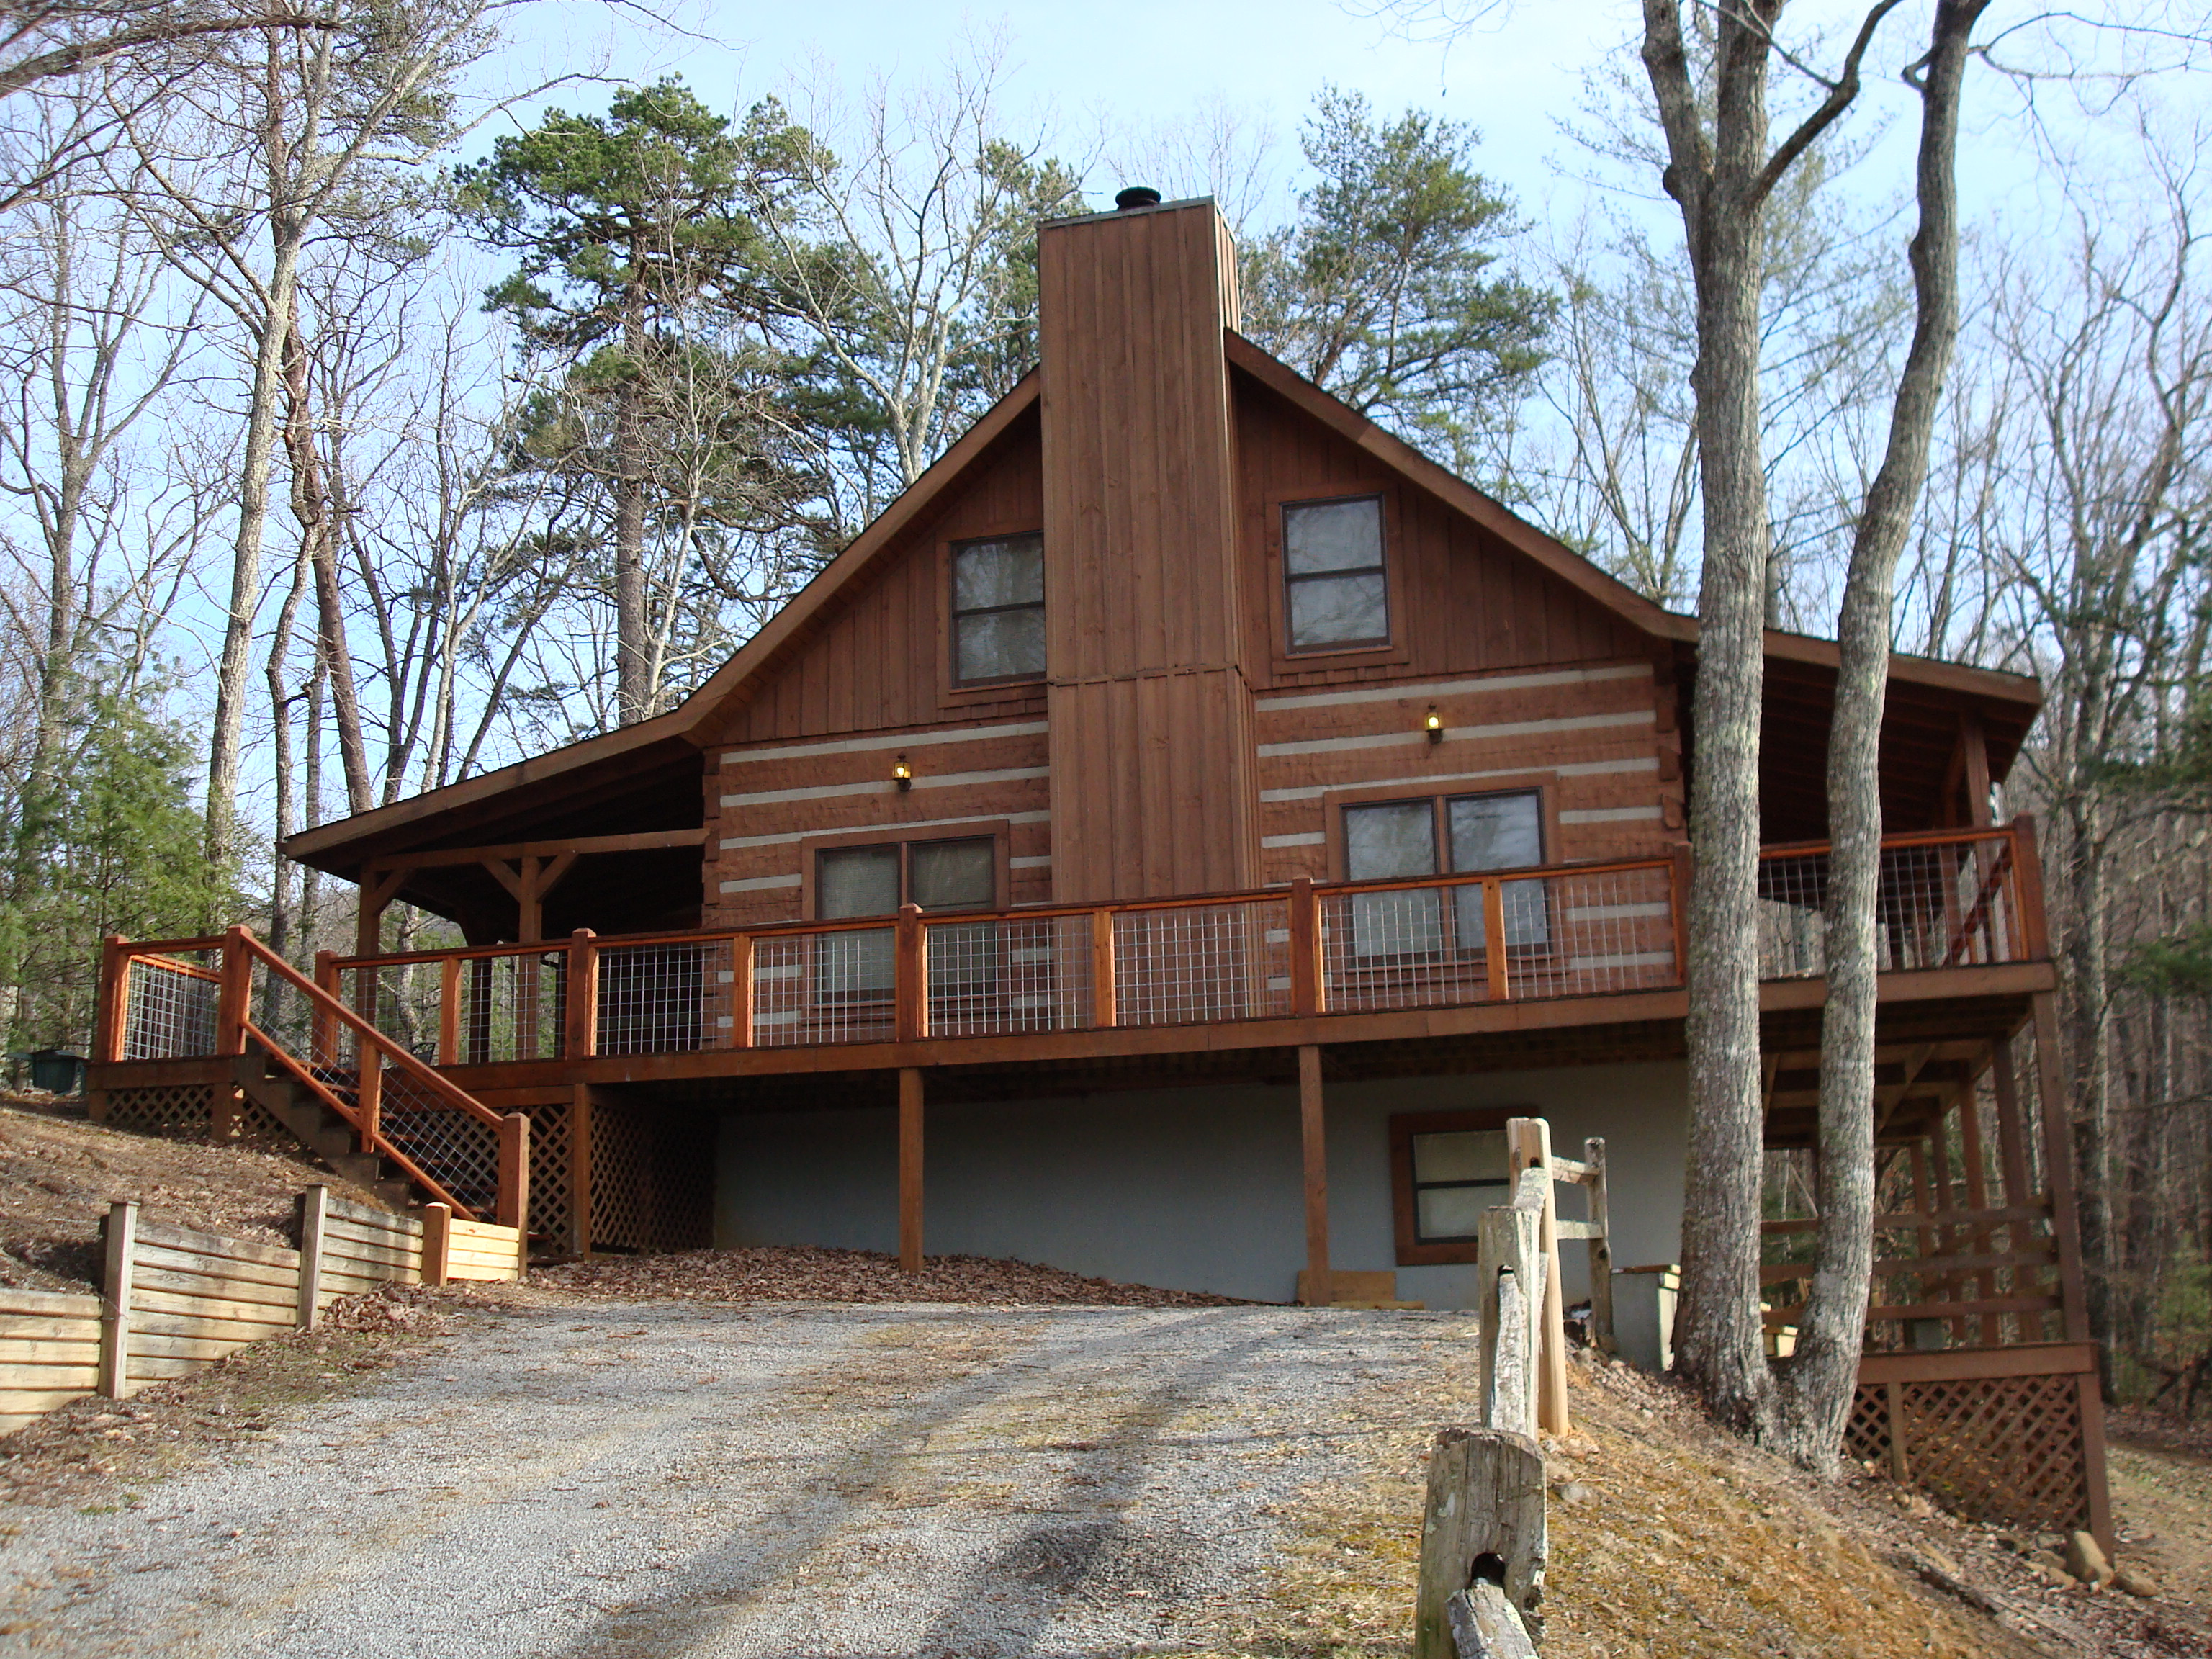 Residential Rental Vacation Homes For Sale In The Smoky